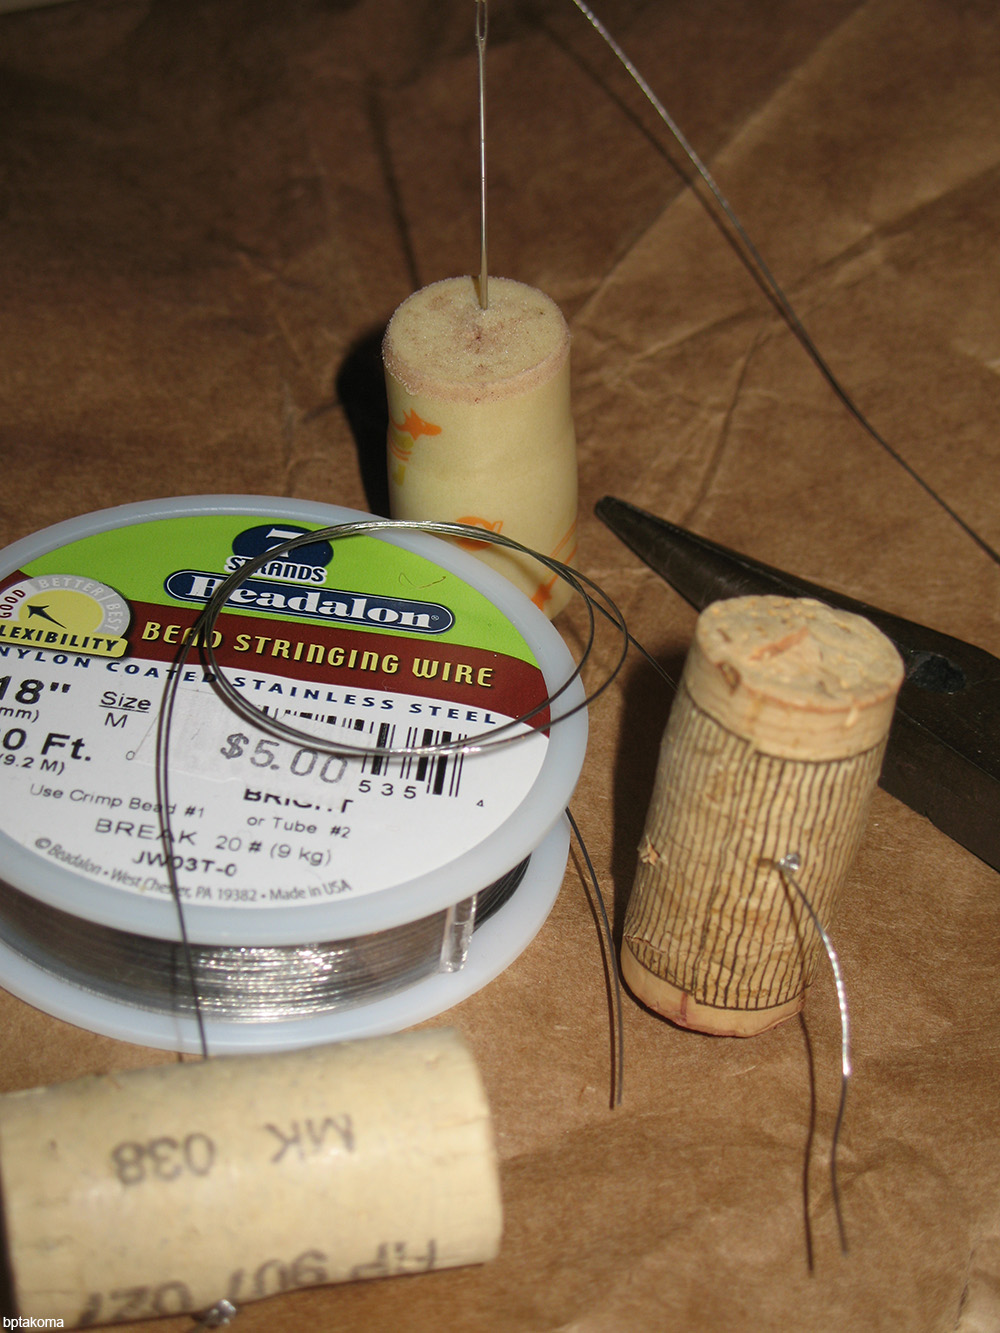 corks being used to hold sewing needles